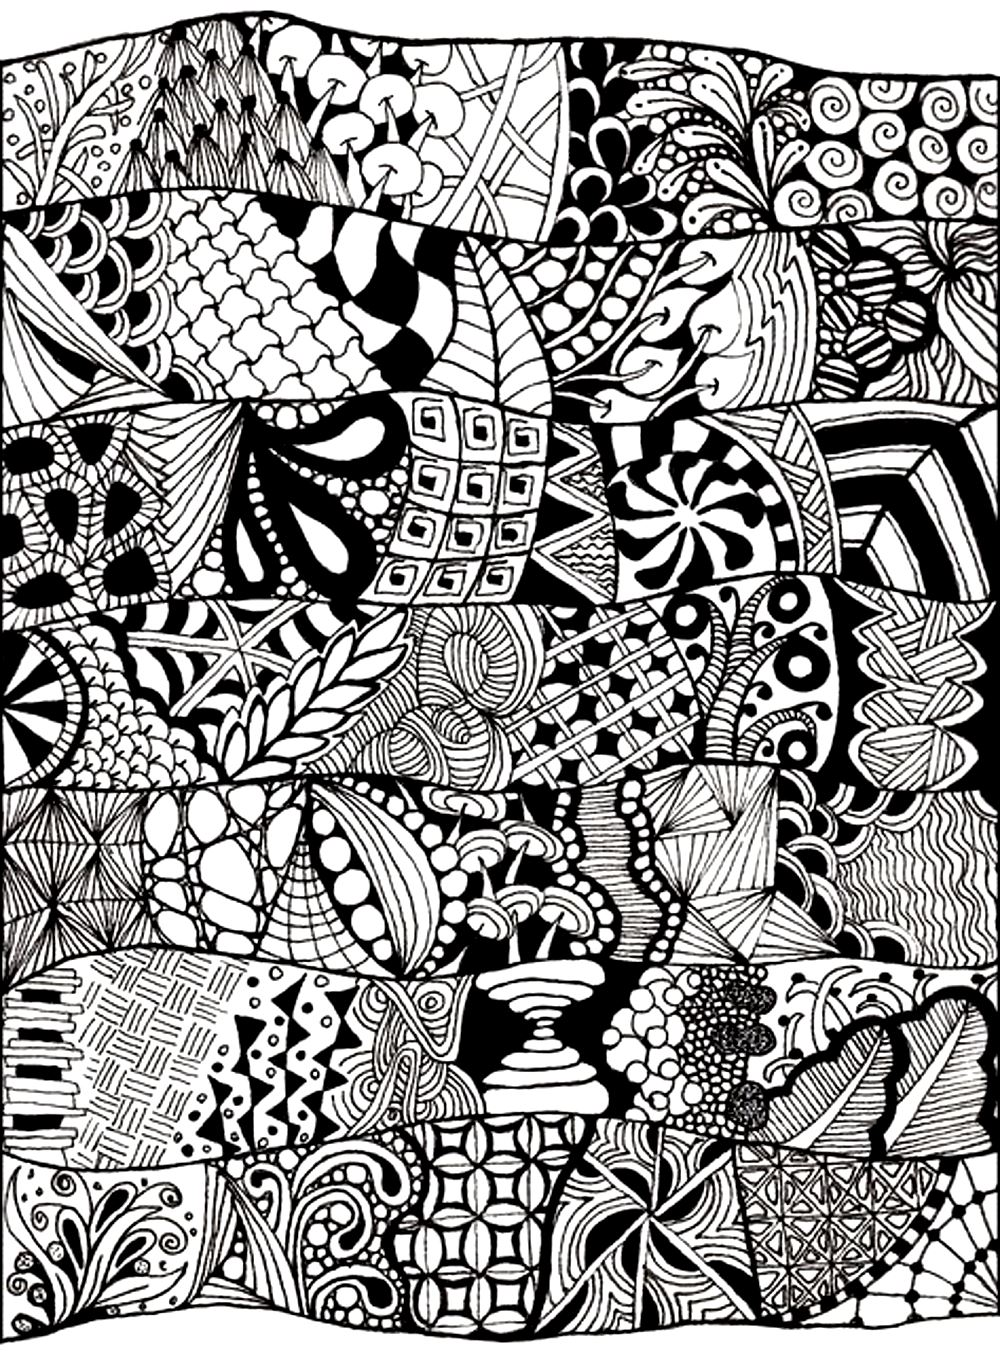 Anti stress colouring pages for adults - Coloring Adult Zen Anti Stress Abstract To Print